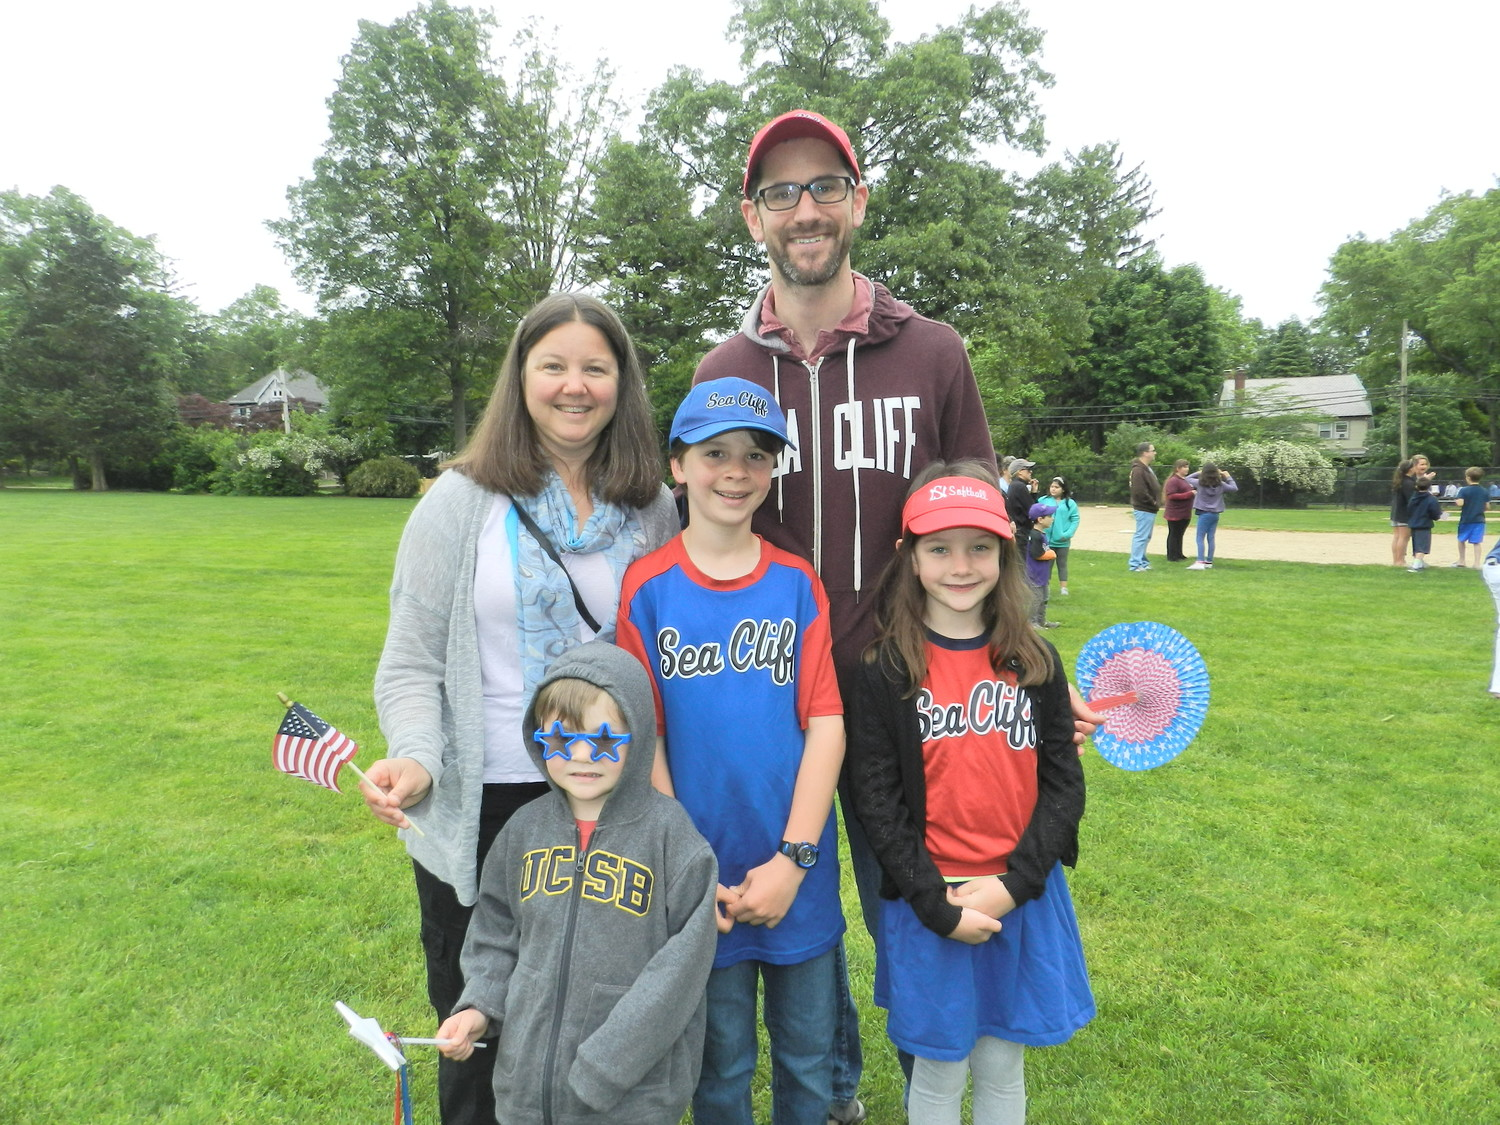 The Lippert family, from left, Courtney, Calvin, Graham, Matt and Maizie, followed the patriotic dress code for the Sea Cliff Memorial Day parade.